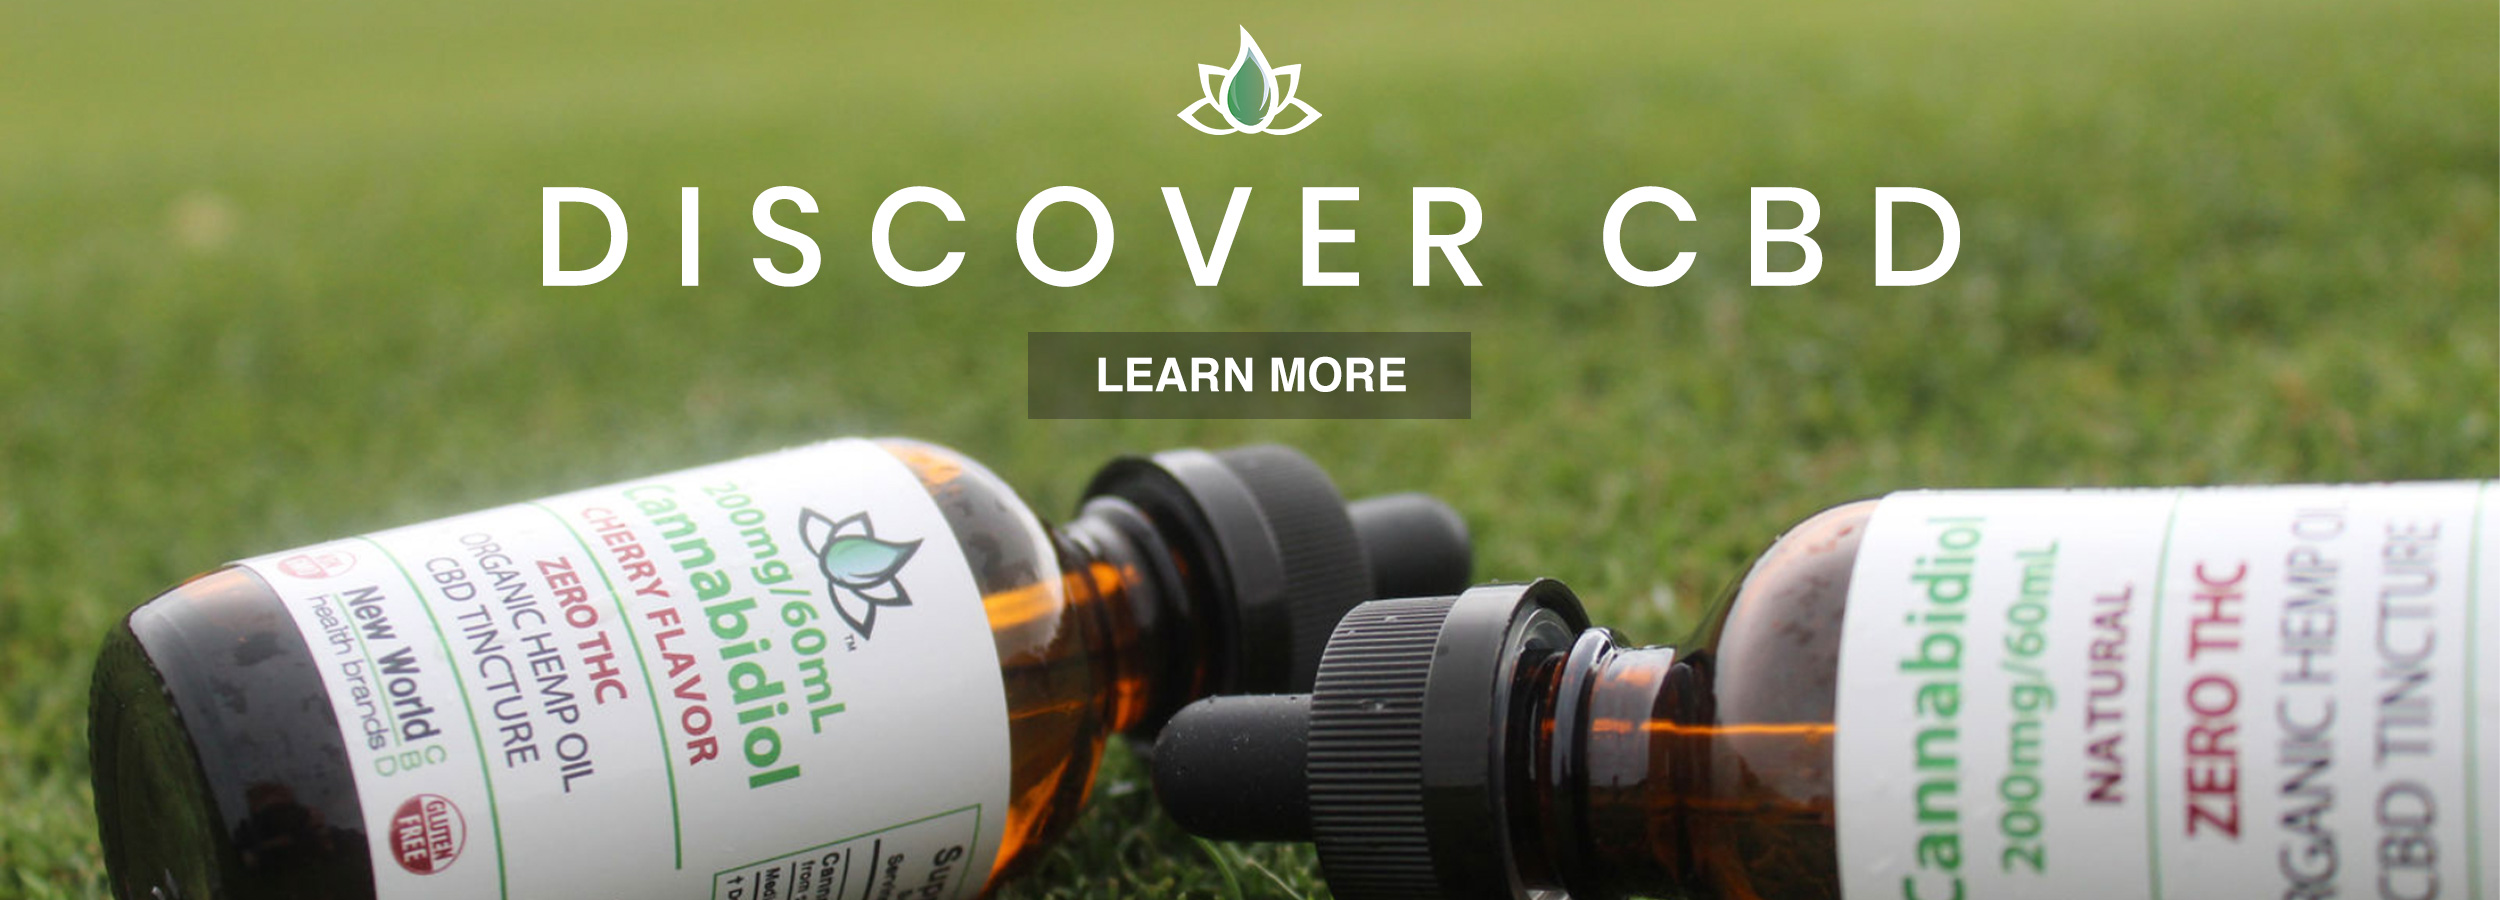 See our Selection of CBD Products for your health